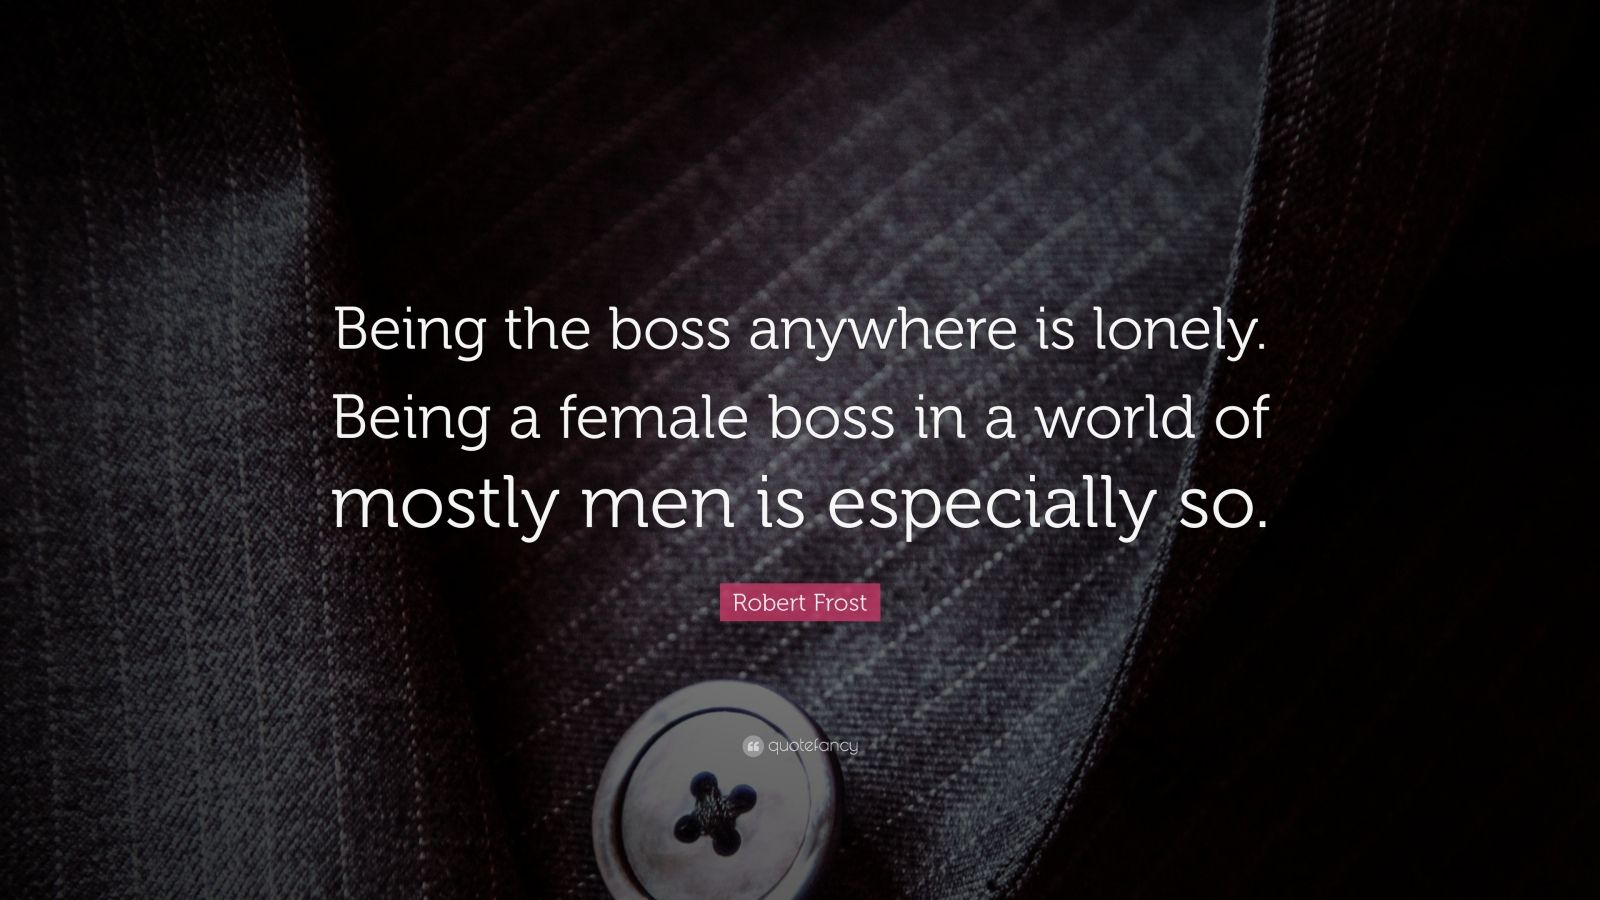 """Robert Frost Quote: """"Being the boss anywhere is lonely. Being a female boss in a world of mostly men is especially so."""""""